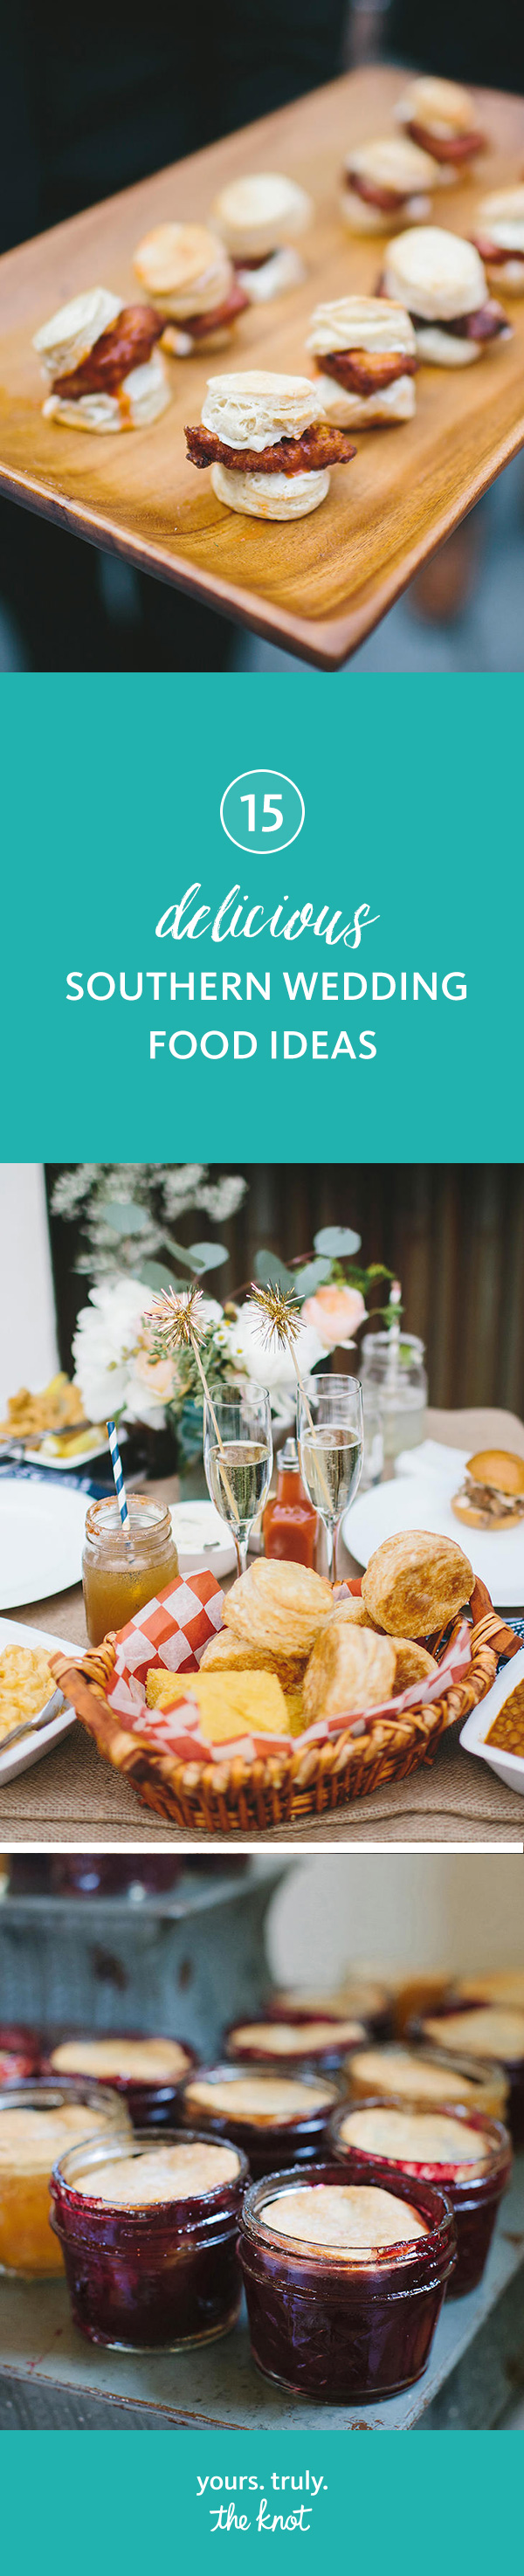 15 Delicious Southern Wedding Food Ideas | Pinterest | Southern ...